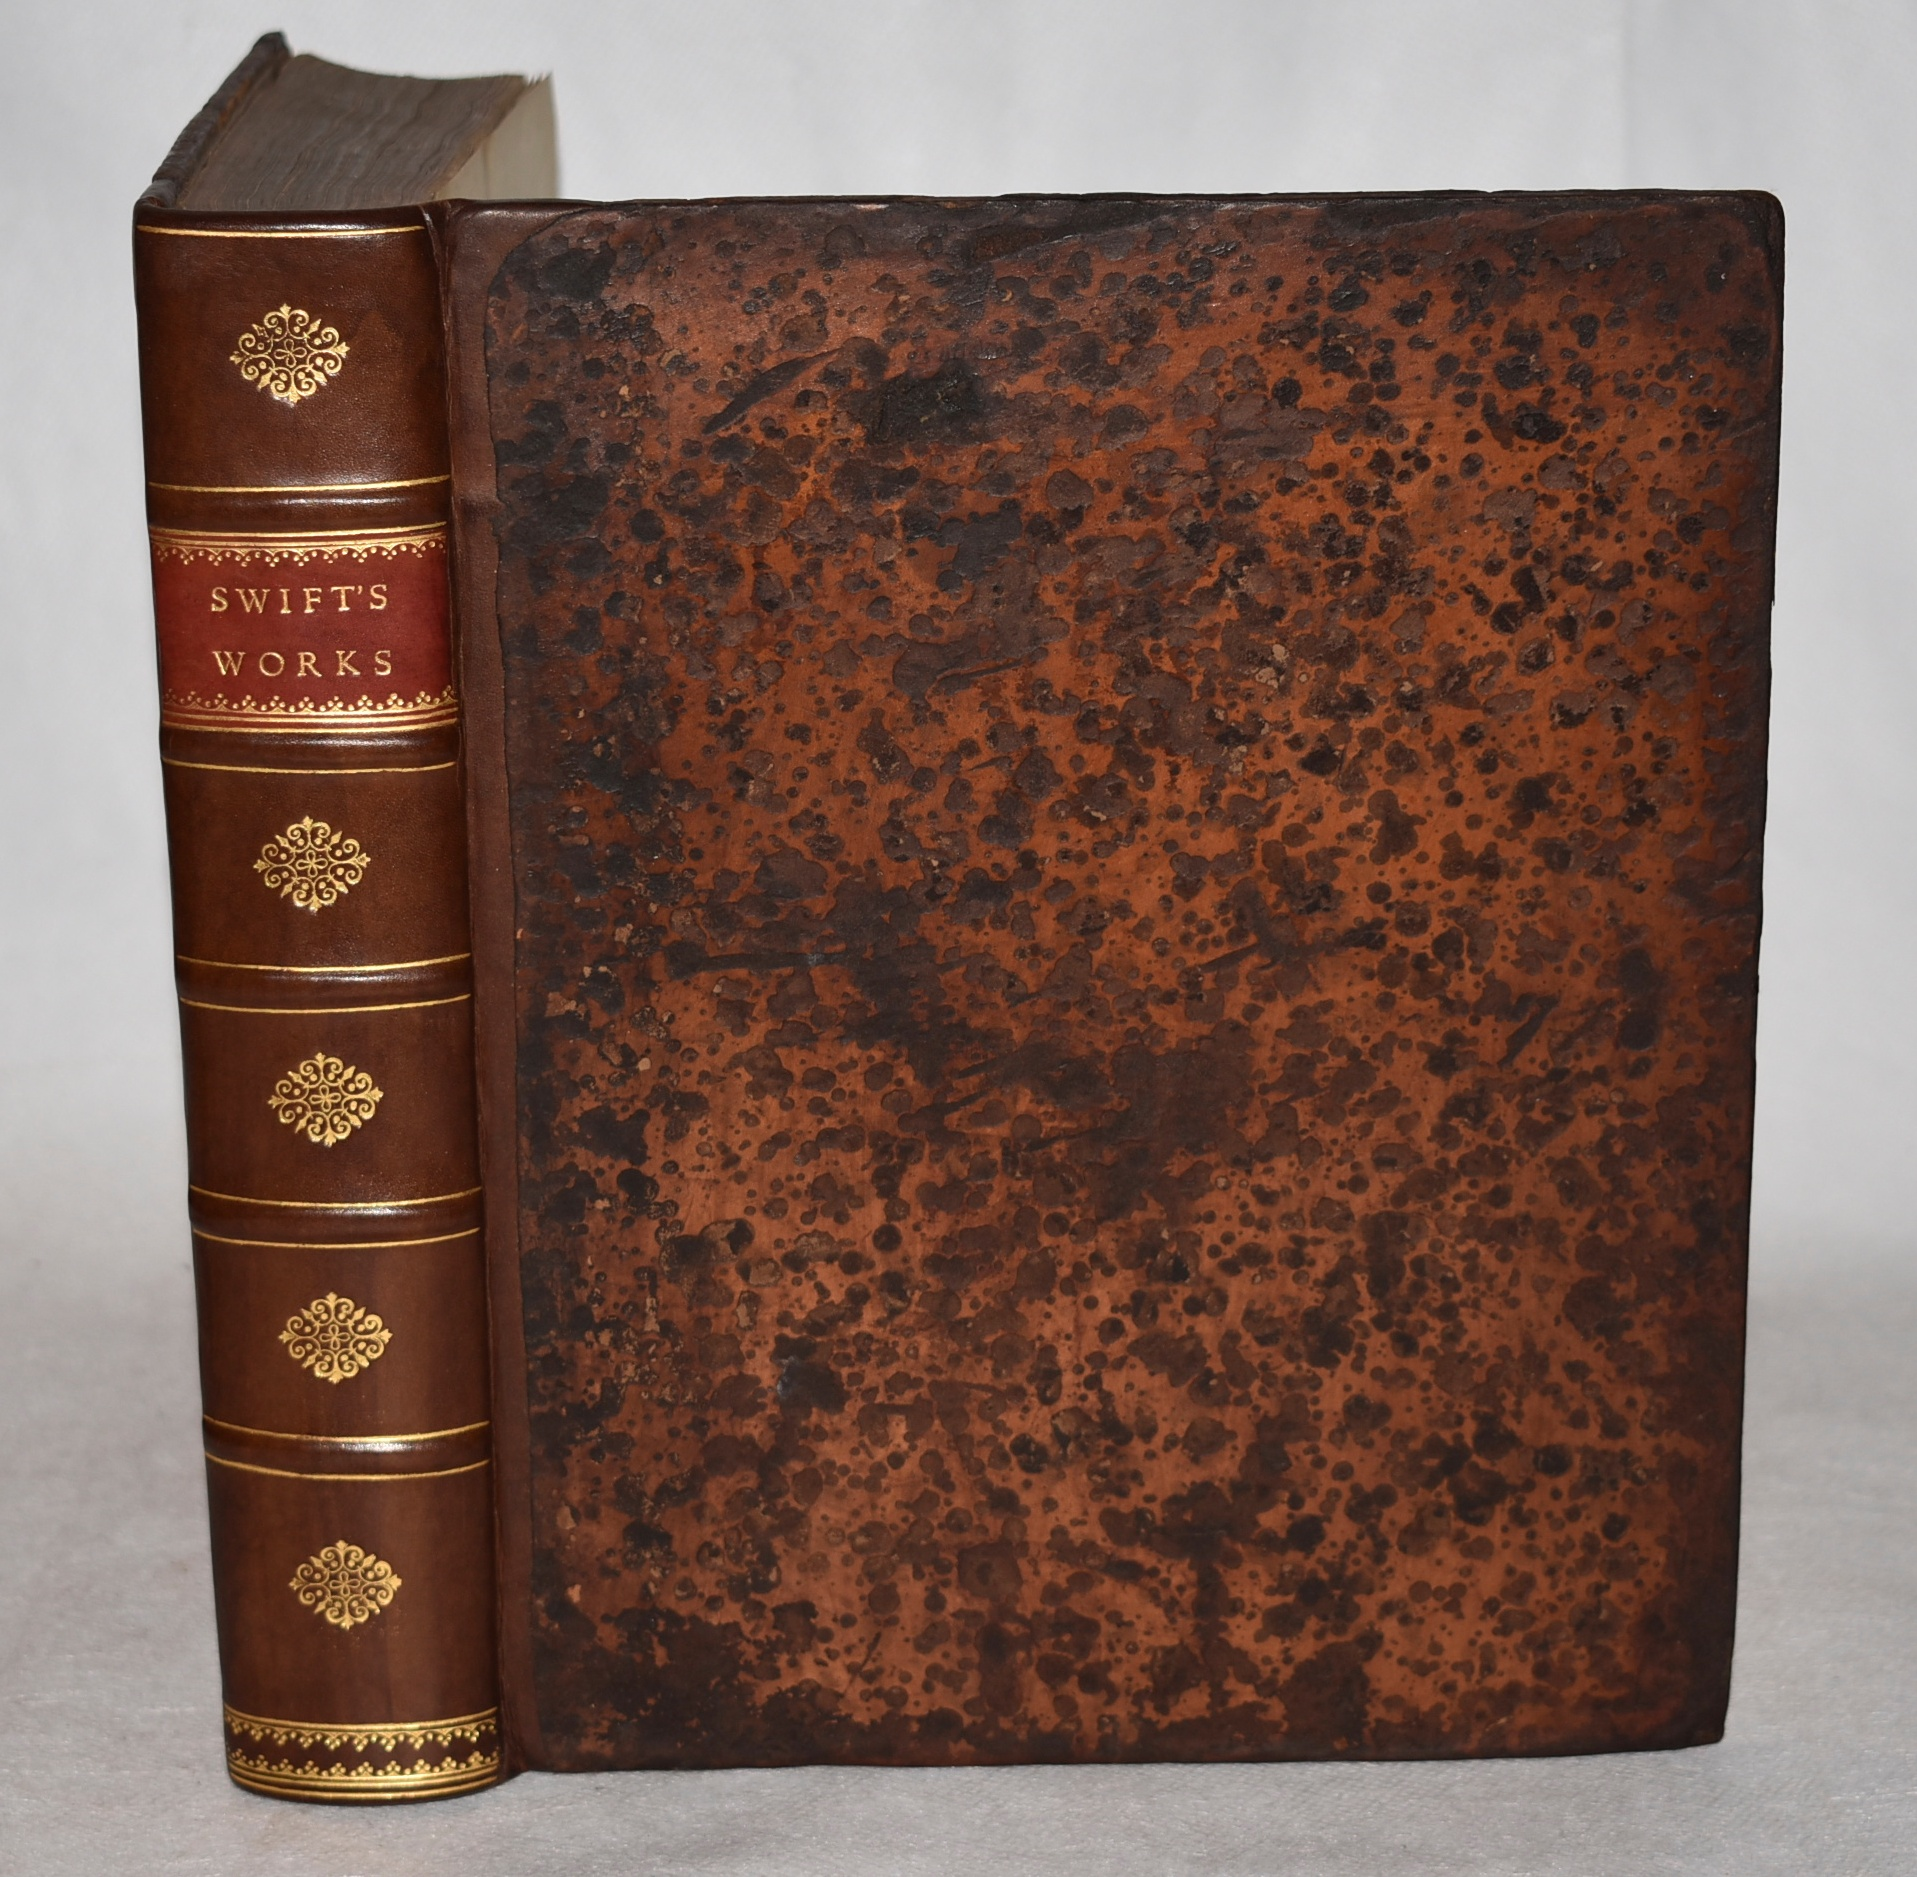 Image for The Works of Dr. Jonathan Swift, Dean of St. Patrick's, Dublin. Accurately revised In Six Volumes. With Some Account of the Author's life, and Notes Historical and Explanatory. Volume I; Parts I & II Only. In Stunning Leather Fine Binding.